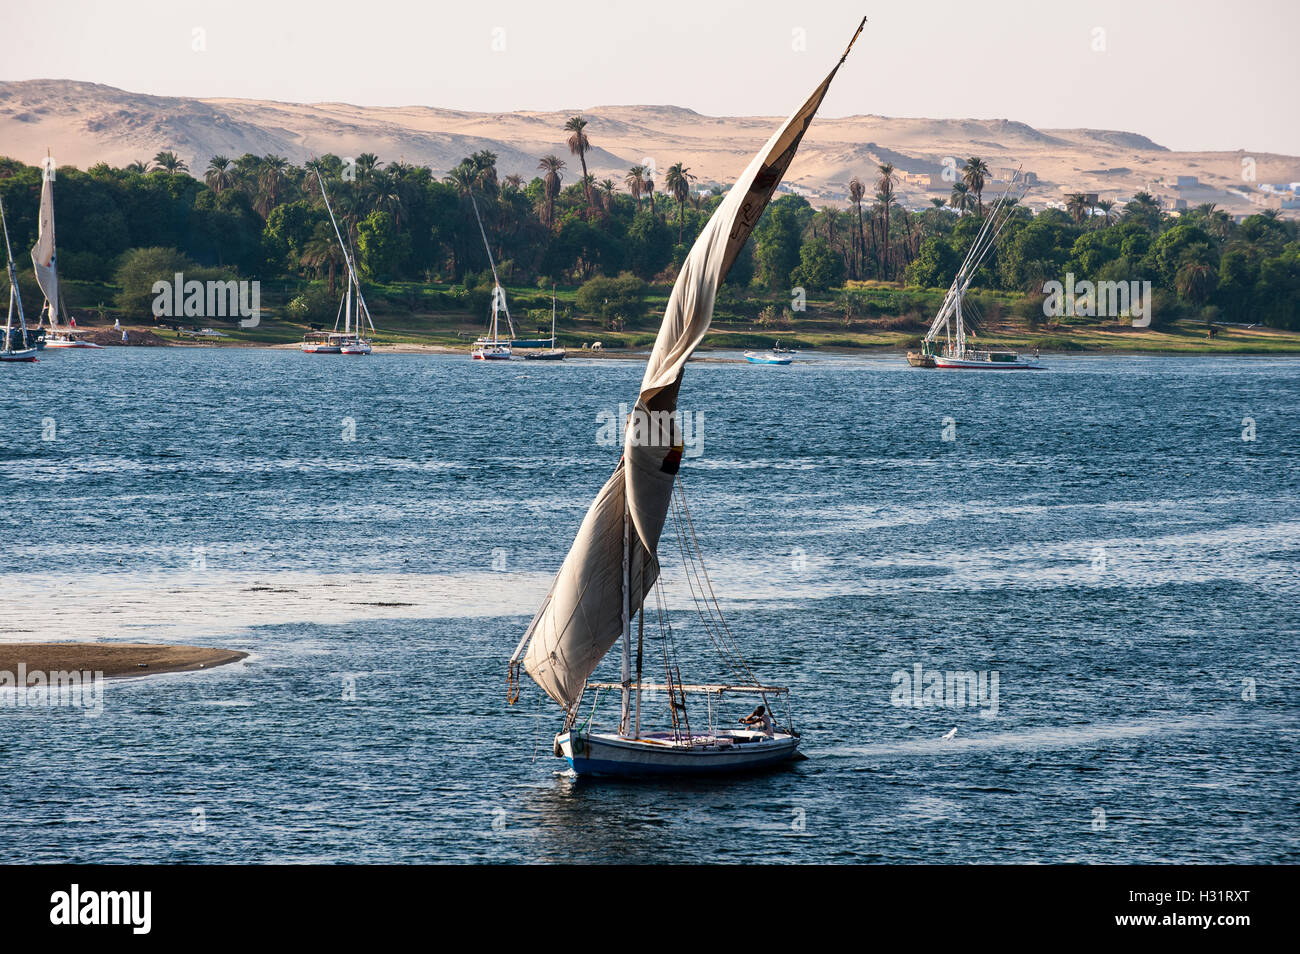 Egypt. Aswan stands on the east bank of the Nile. A felucca is a traditional wooden sailing boat. - Stock Image